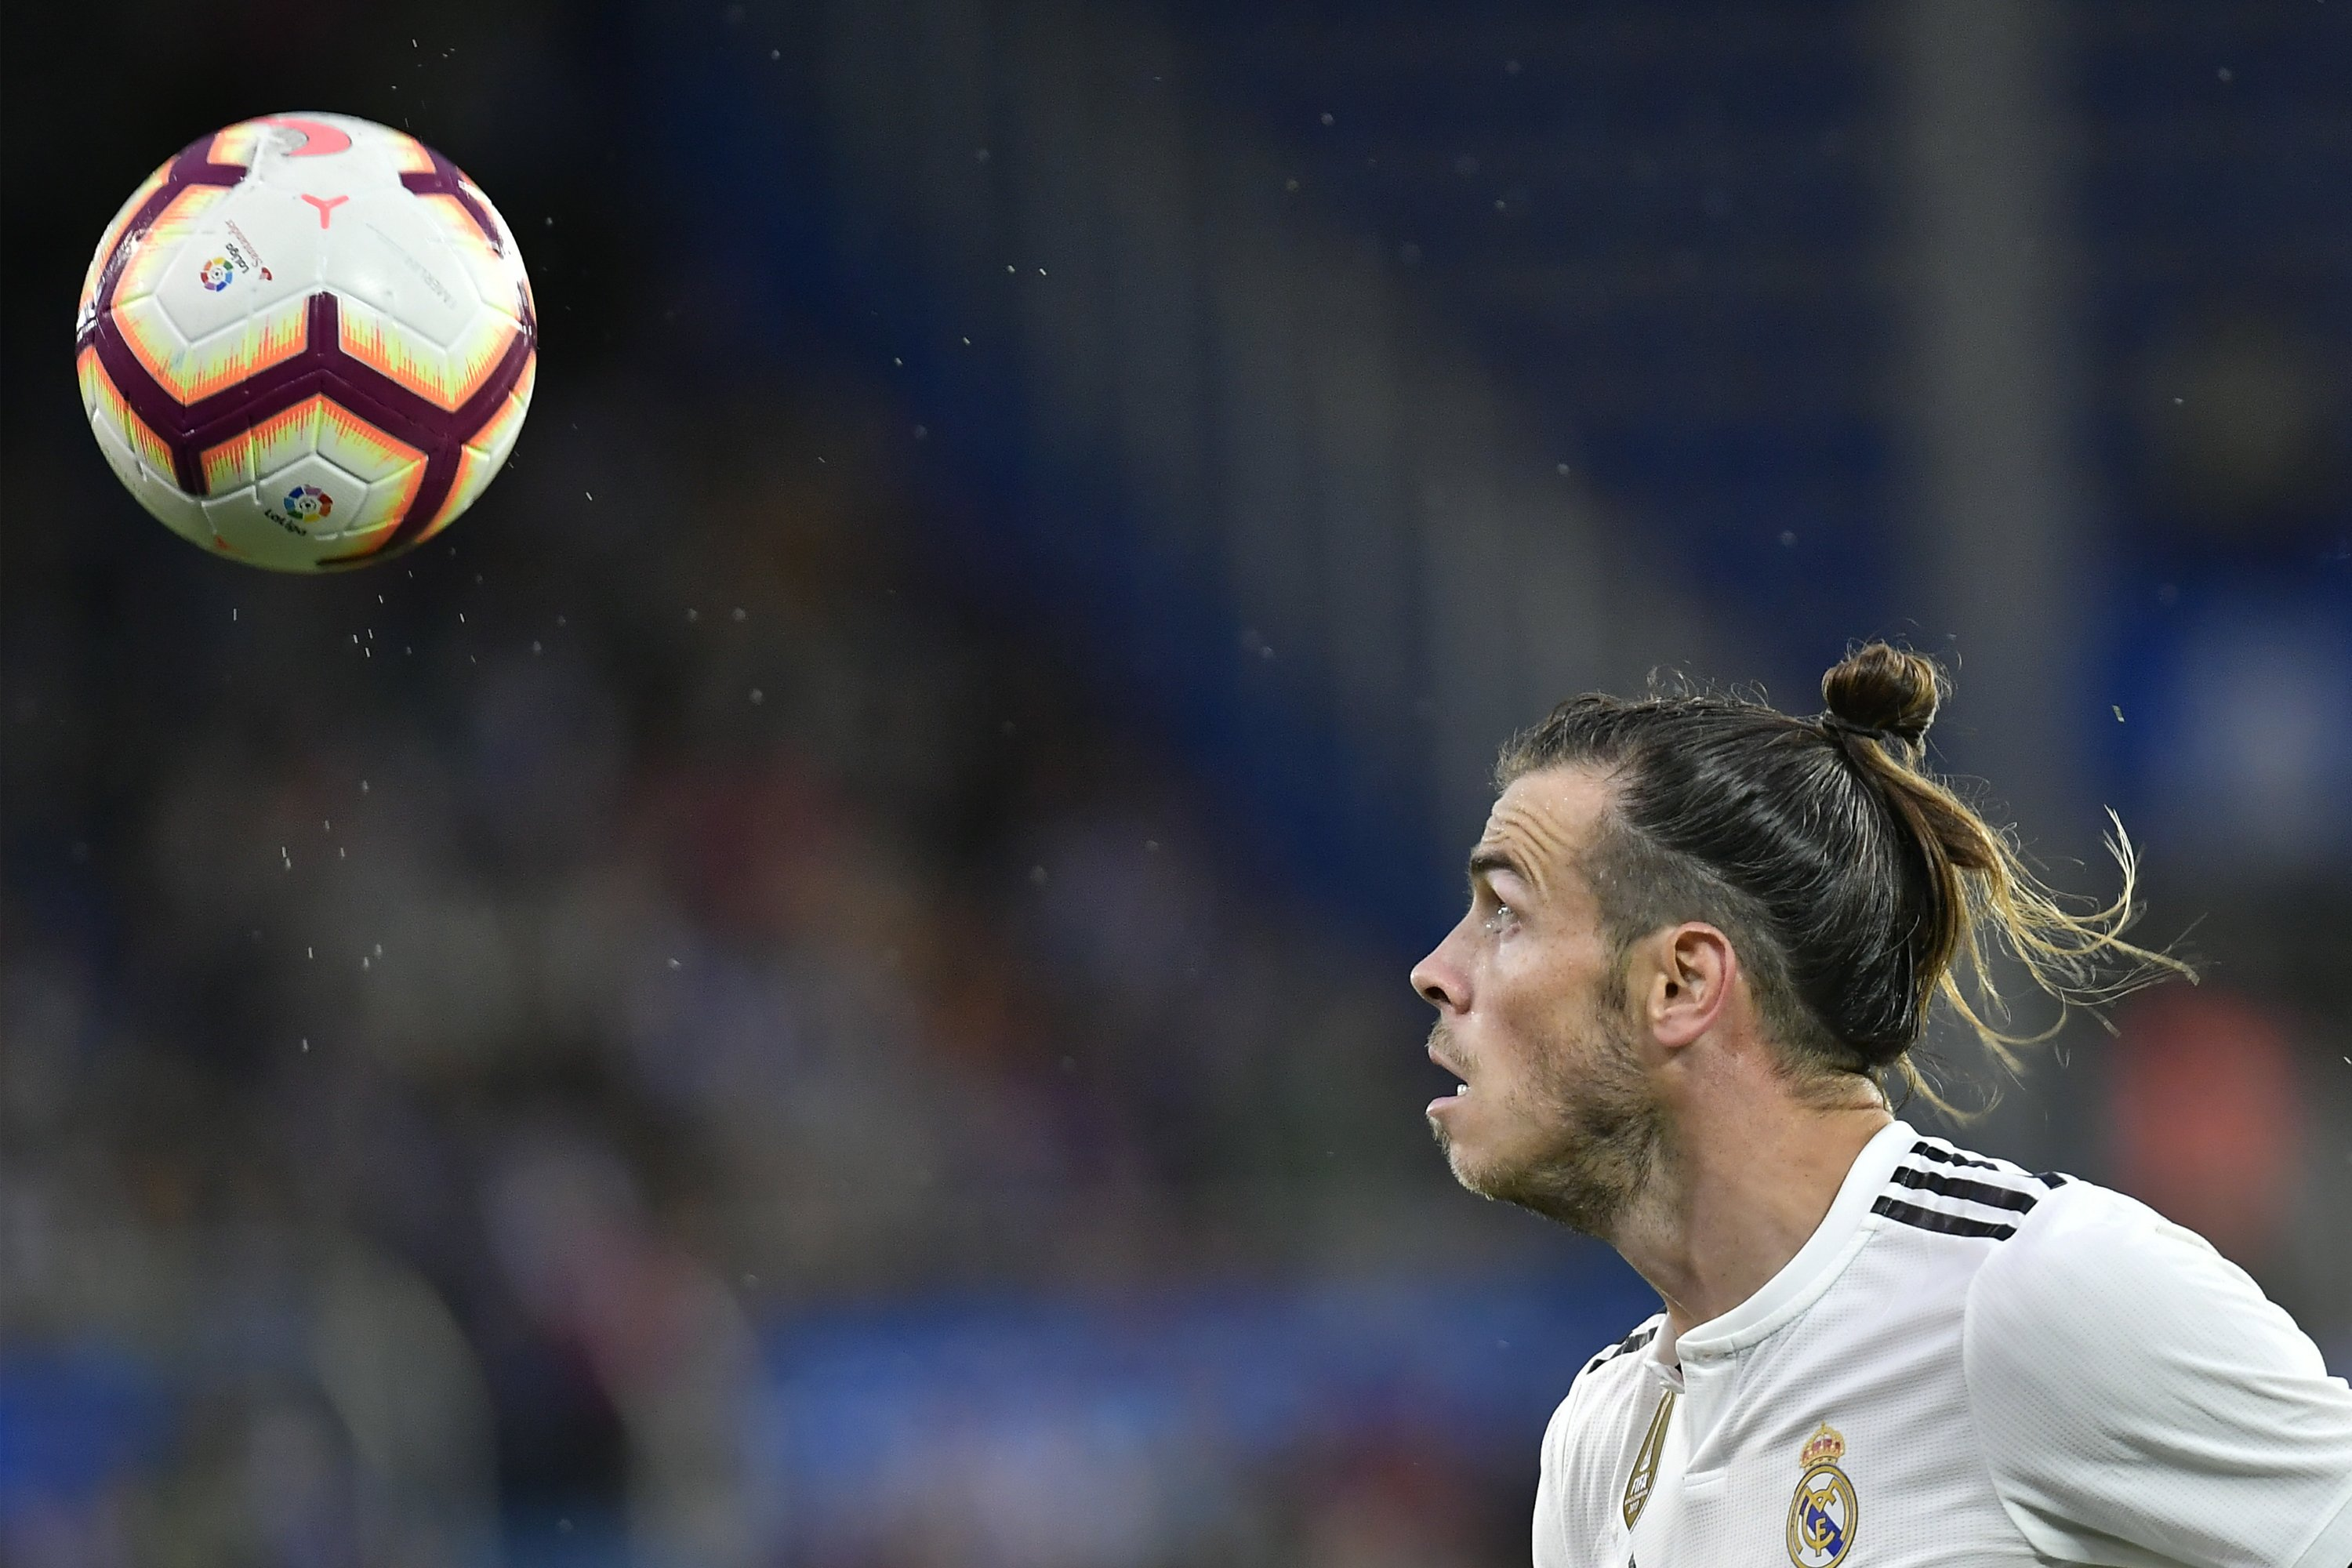 Bale, Benzema join Real Madrid's list of injured players